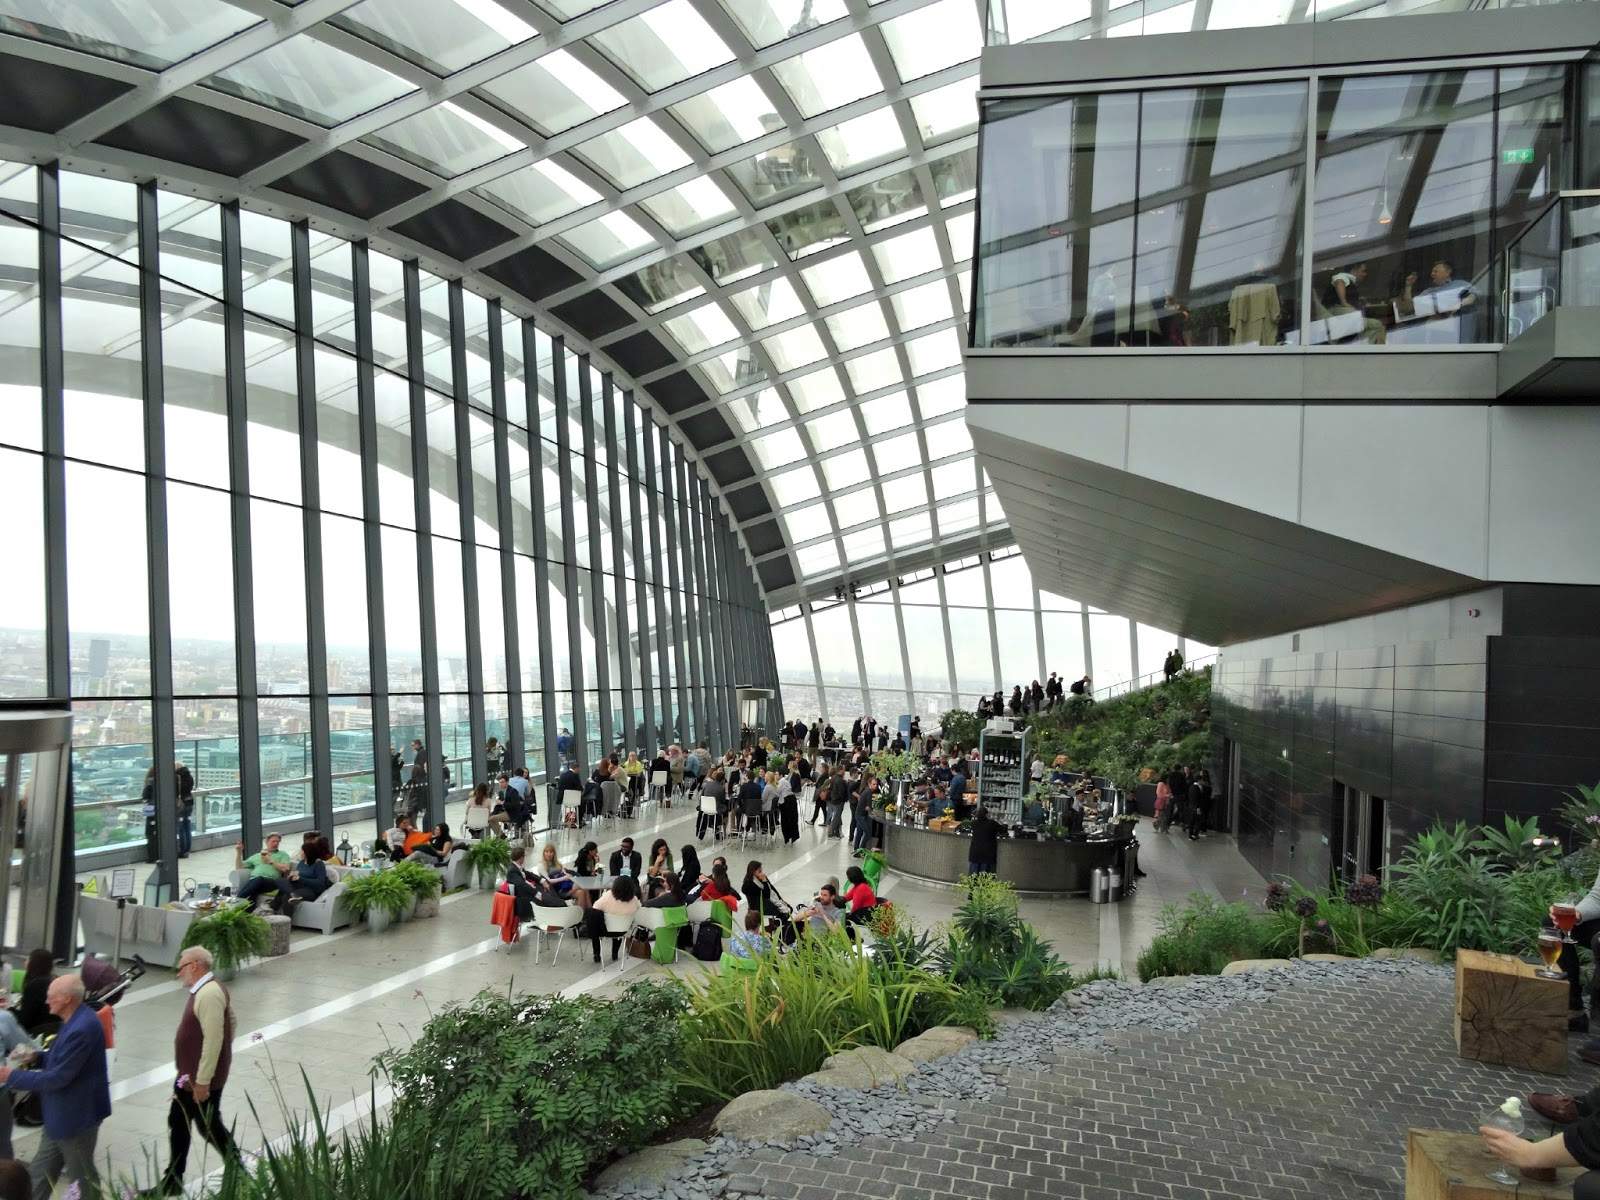 Sky Garden London review